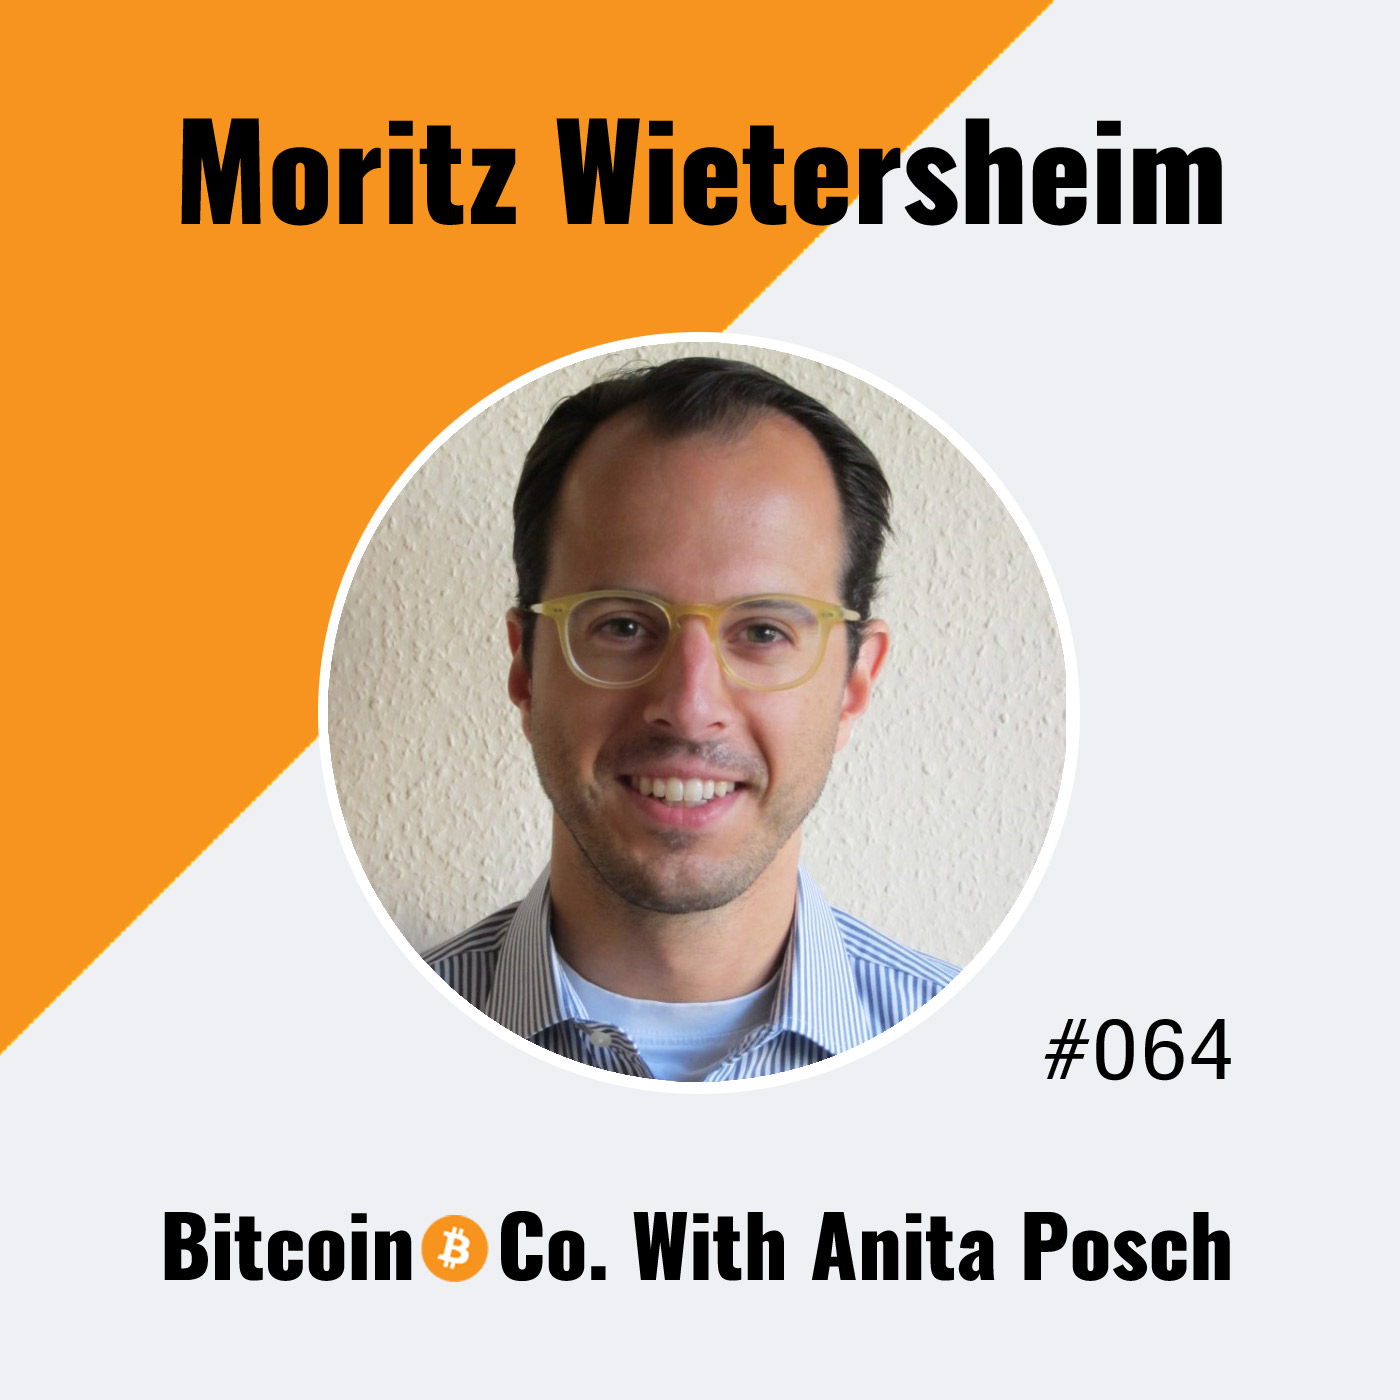 Moritz Wietersheim: Why Bitcoin Is Superior to Altcoins or Stock Nonsense Like Wirecard